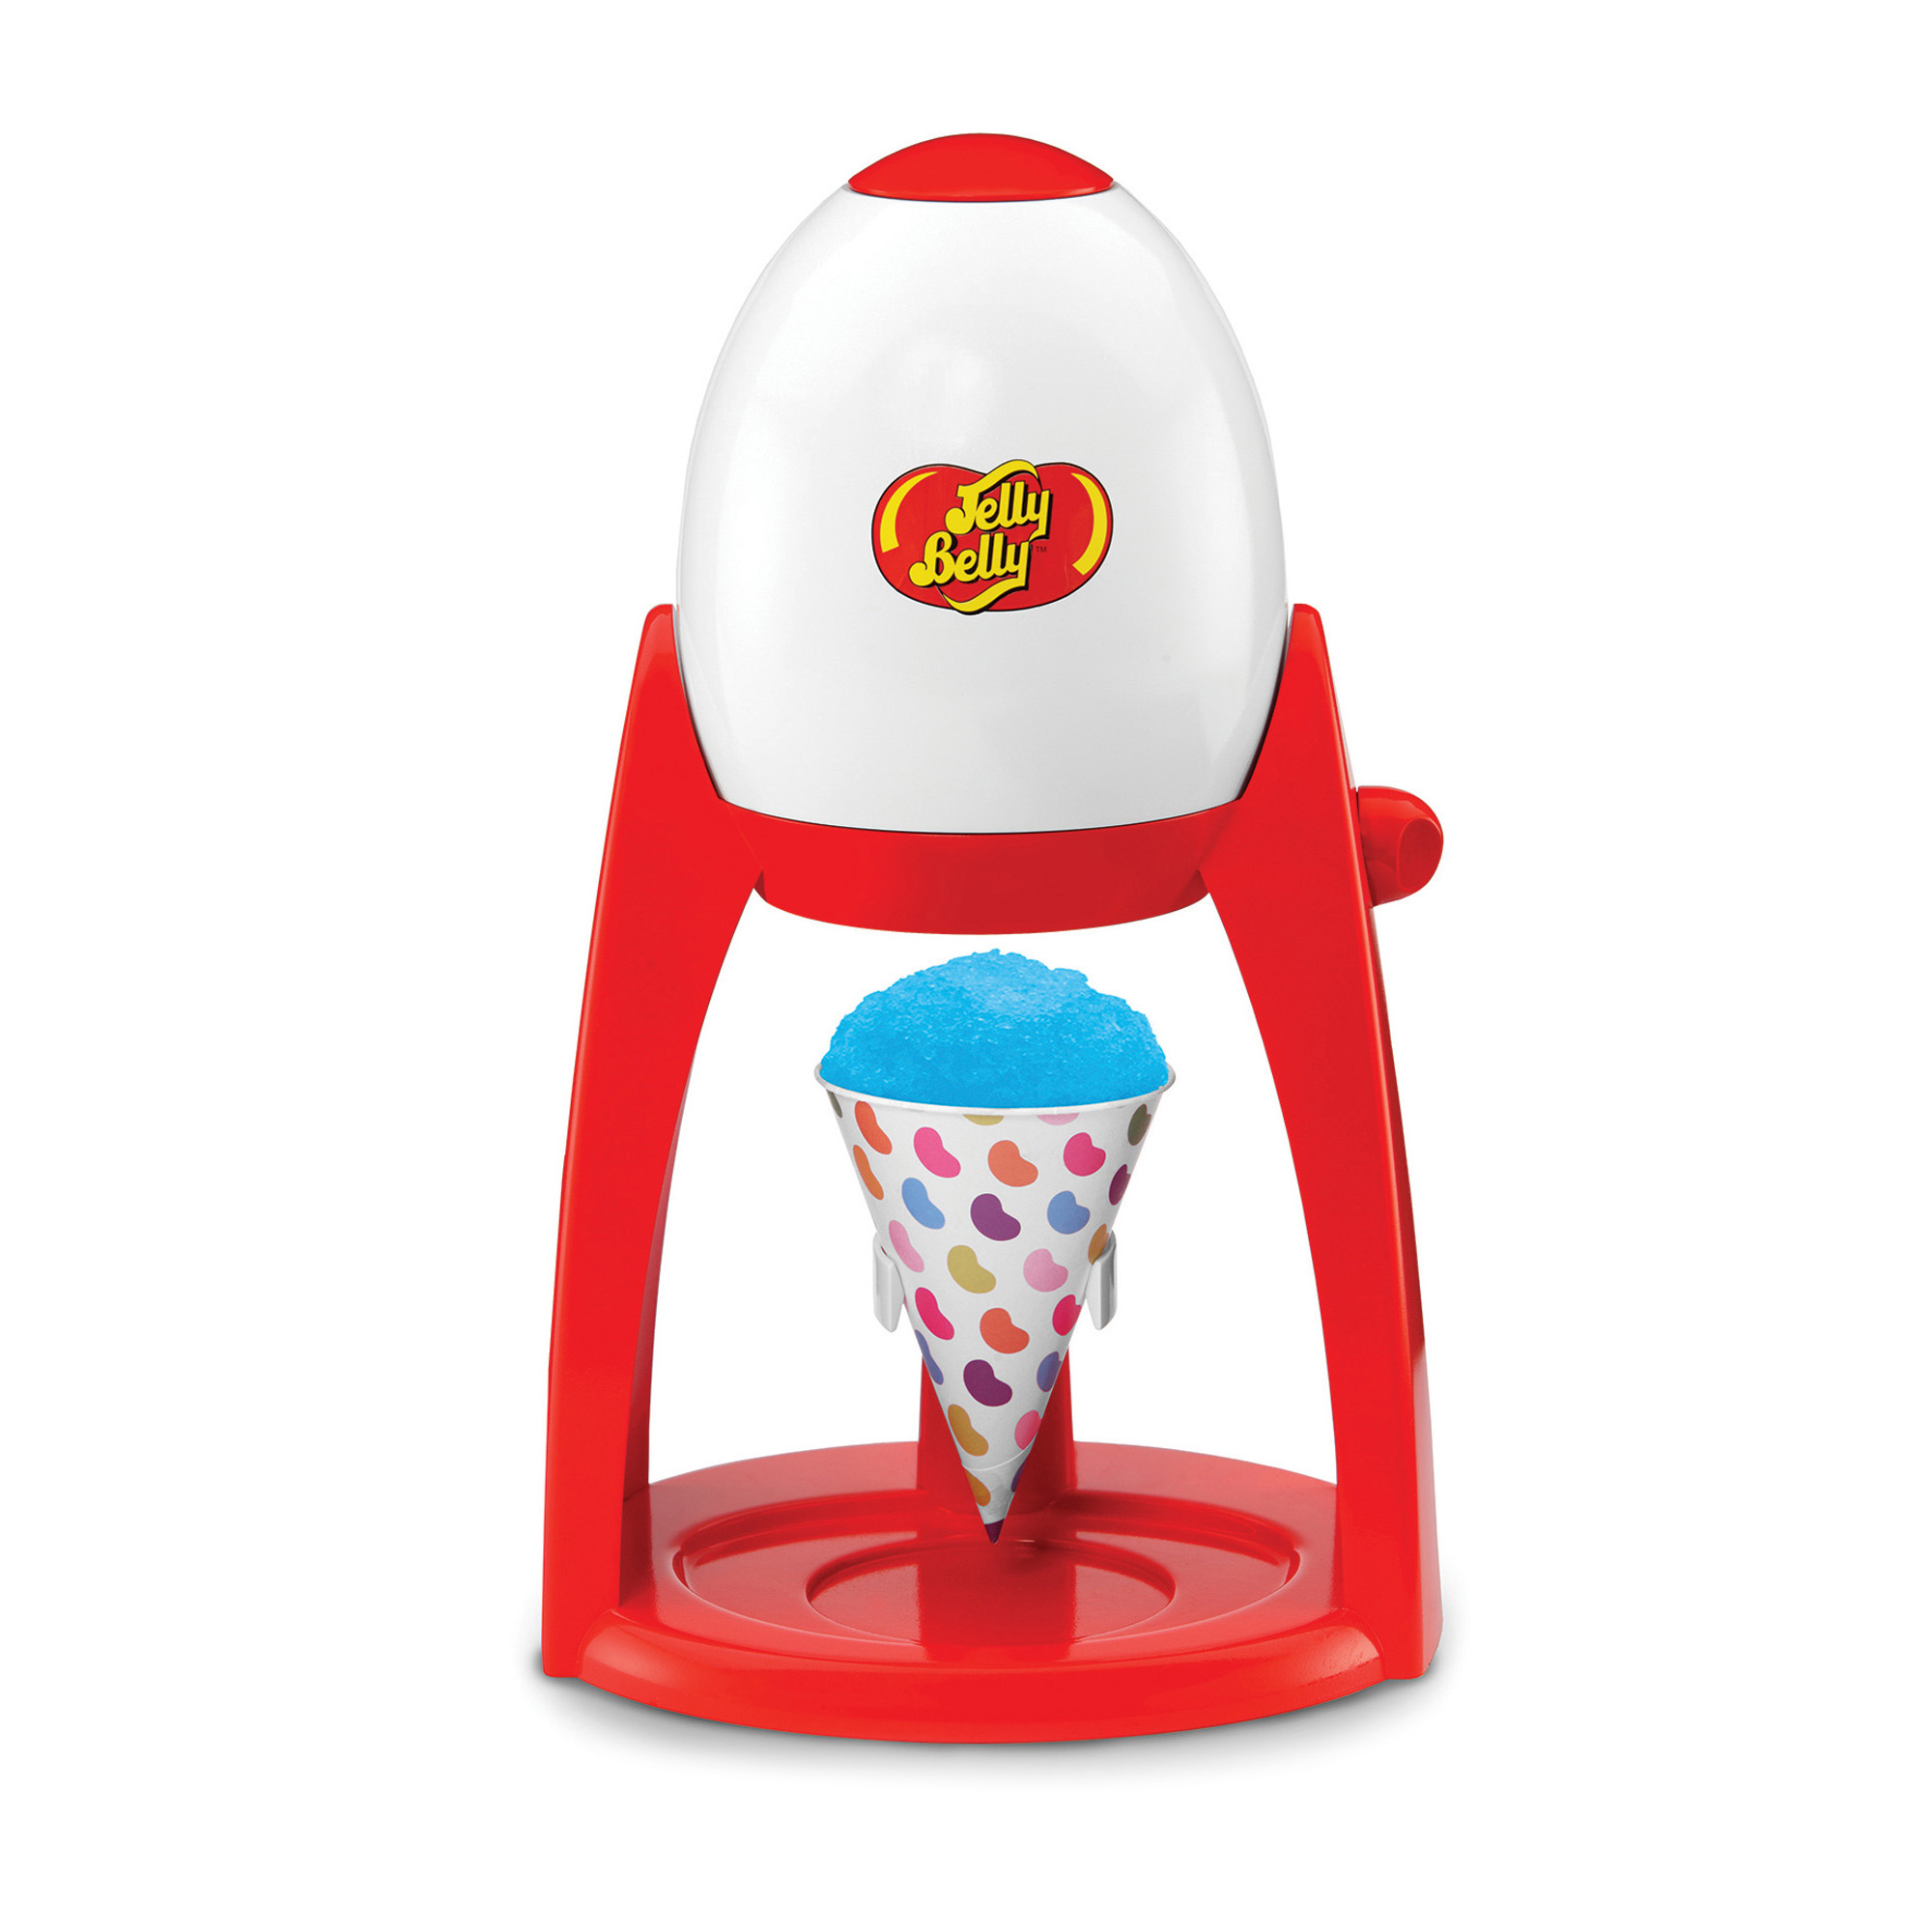 Jelly Belly JB15335 Electric Flavor Snow Ice Shaver, Red